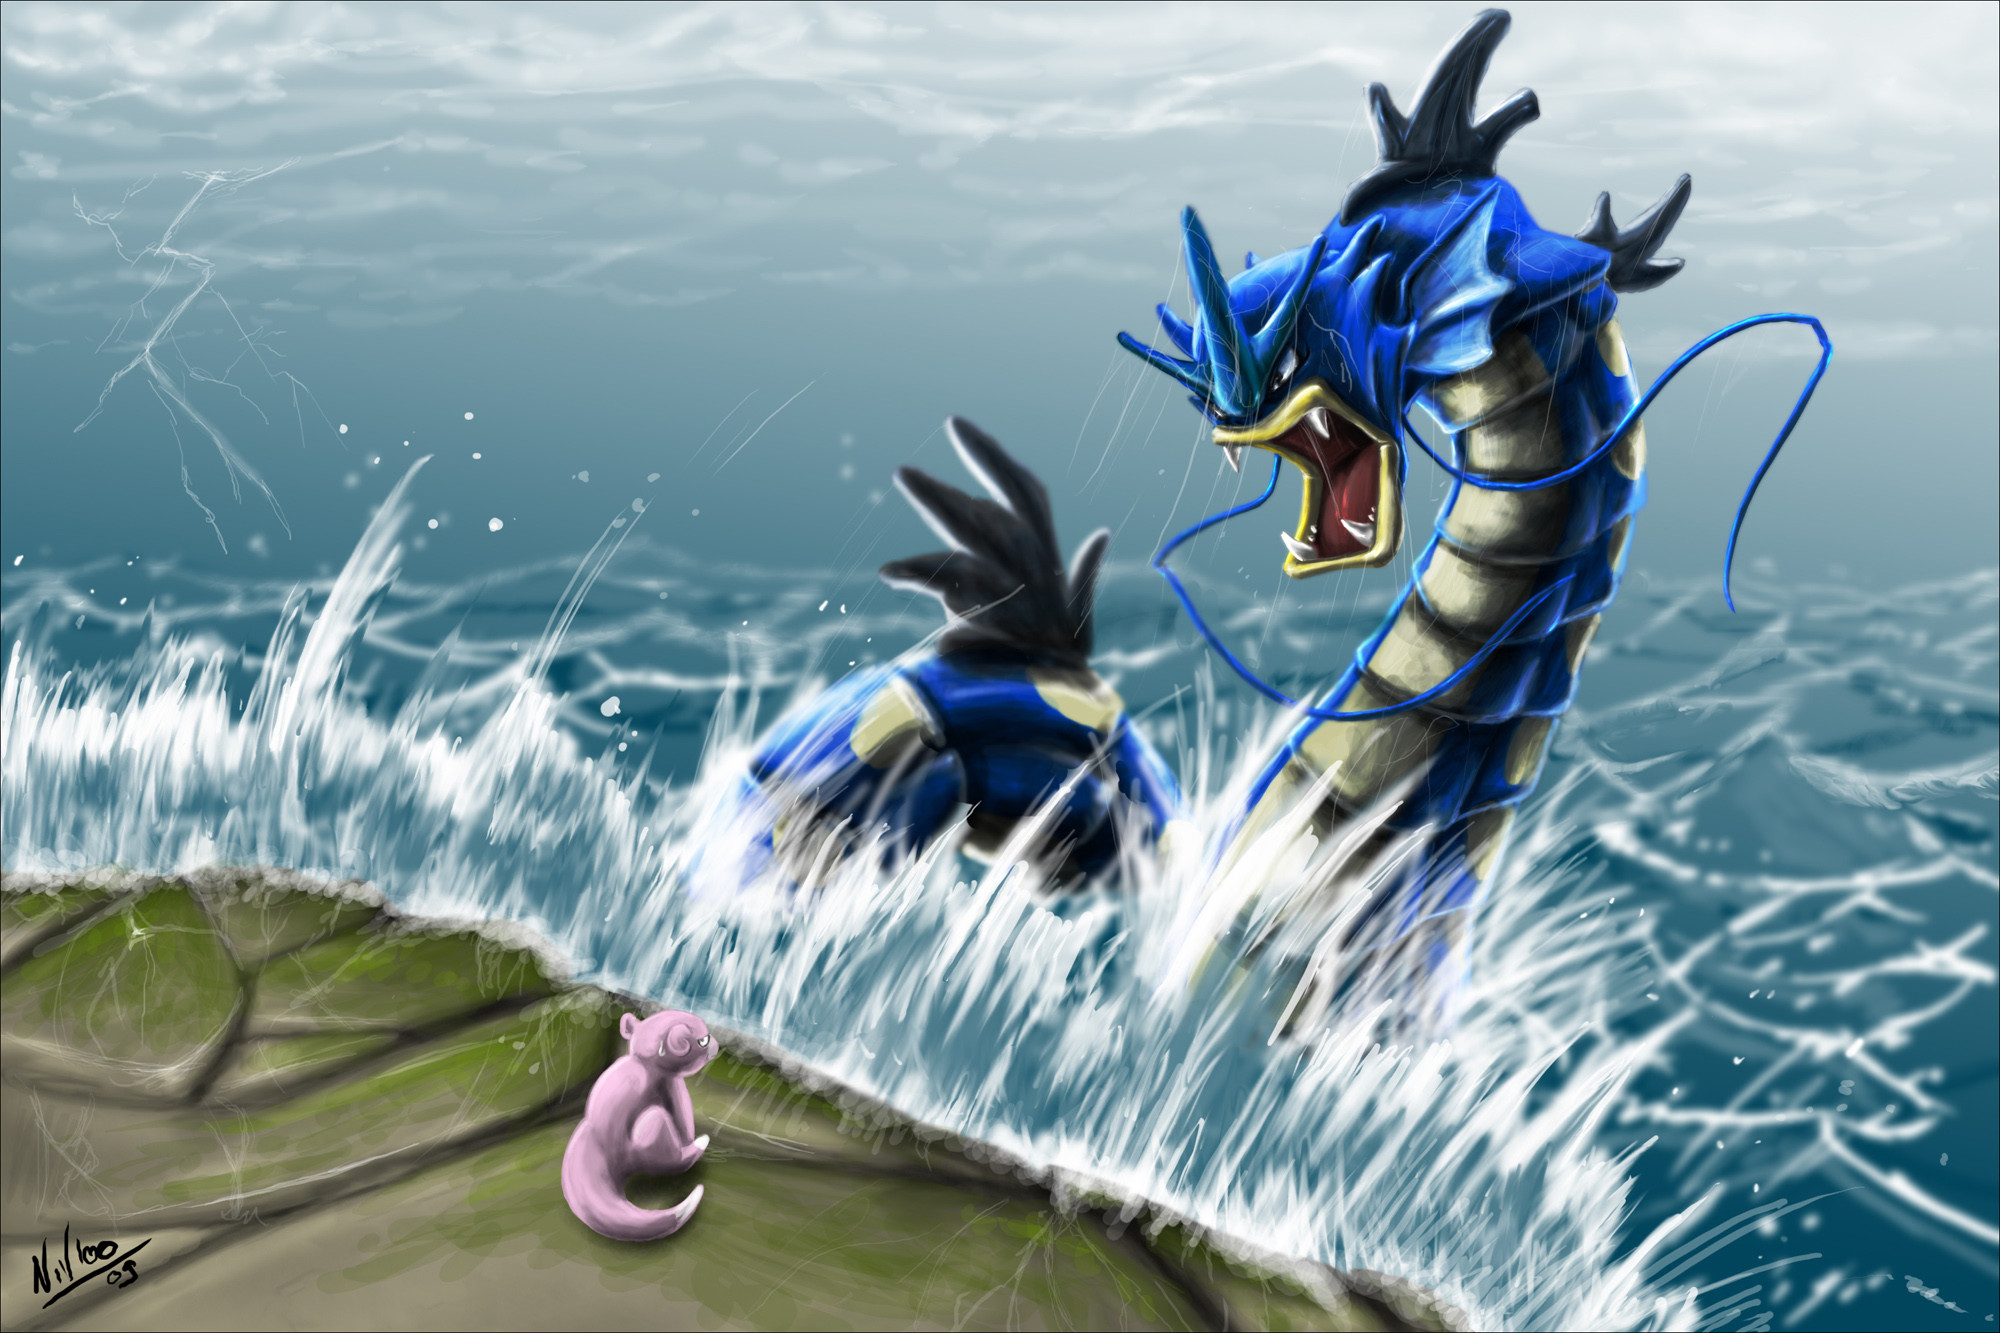 cool pokemon backgrounds | … Pokémon wallpapers as your desktop background  and celebrate your